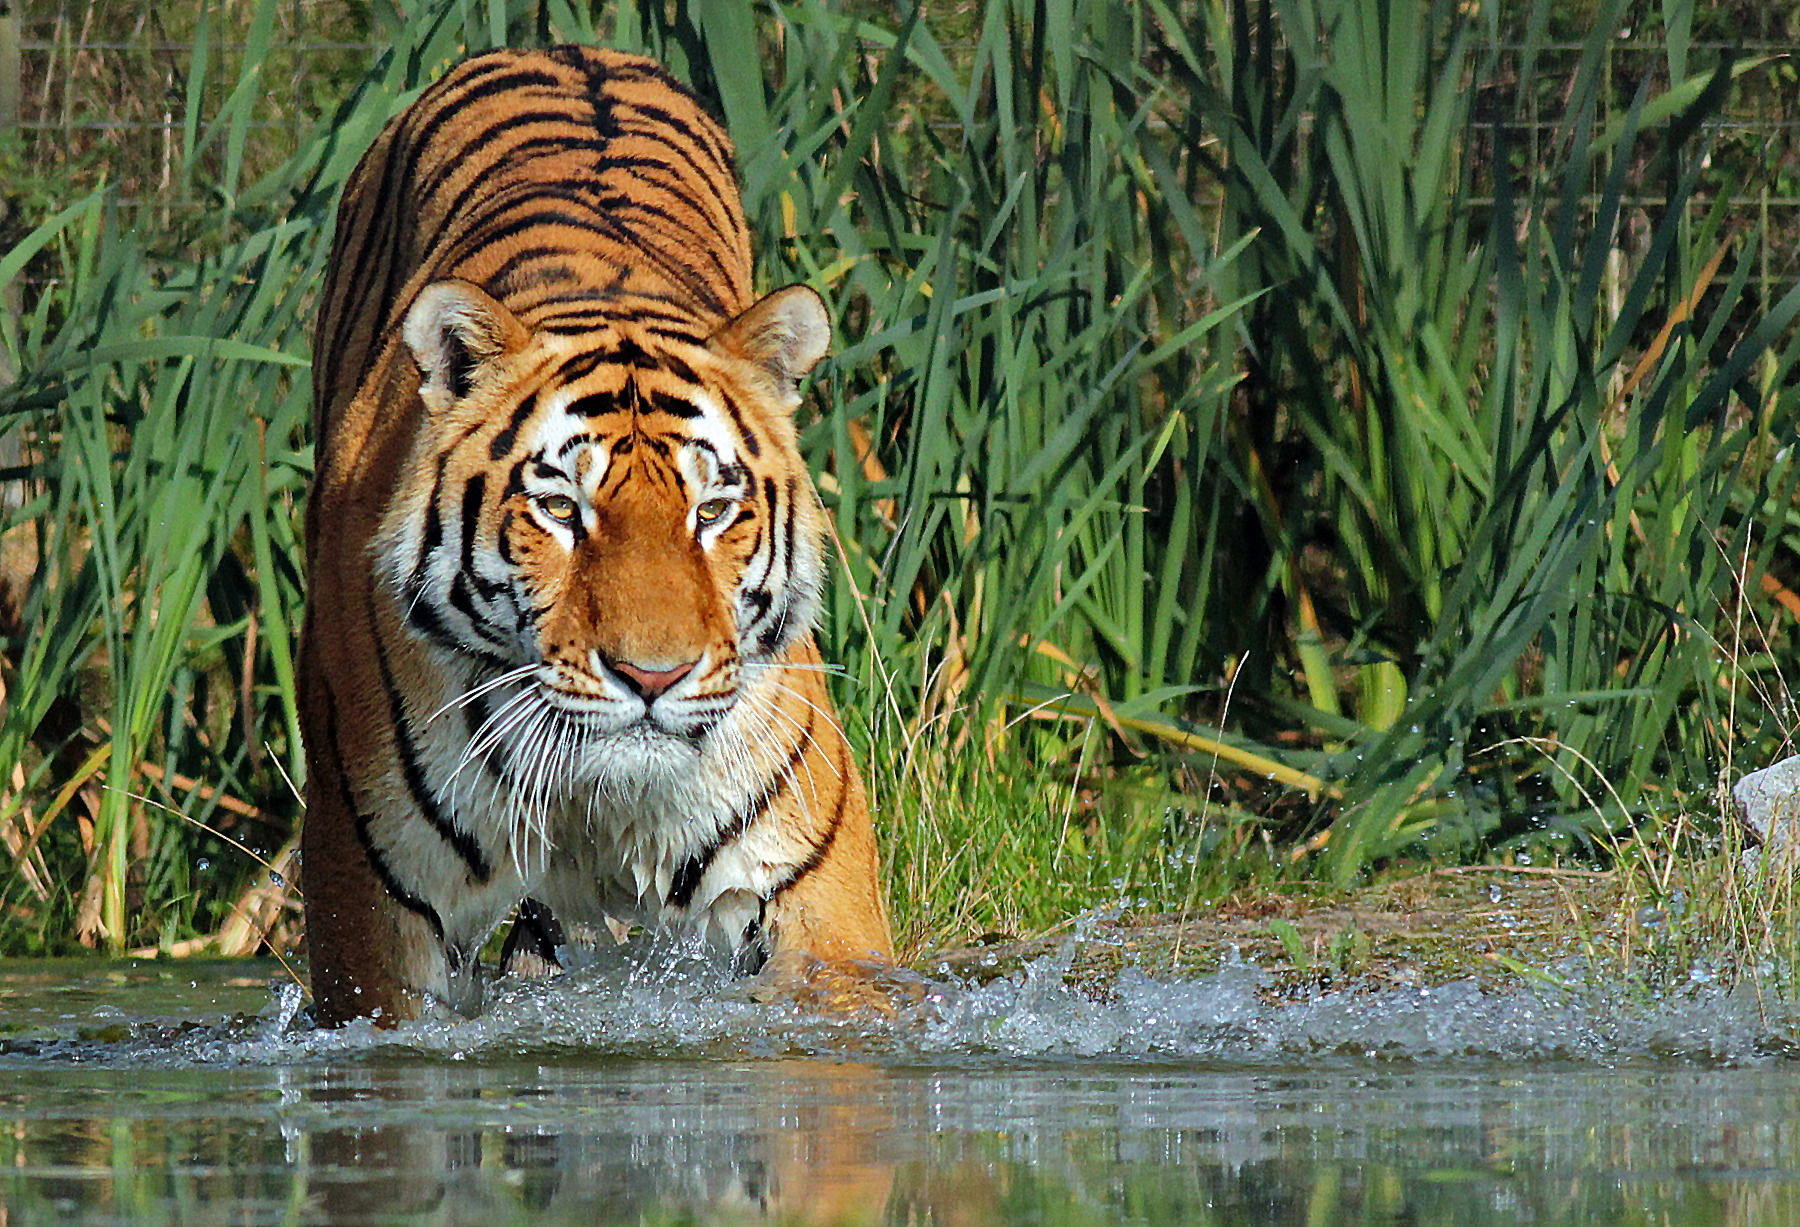 Securing a future for tigers | Zoological Society of London (ZSL)